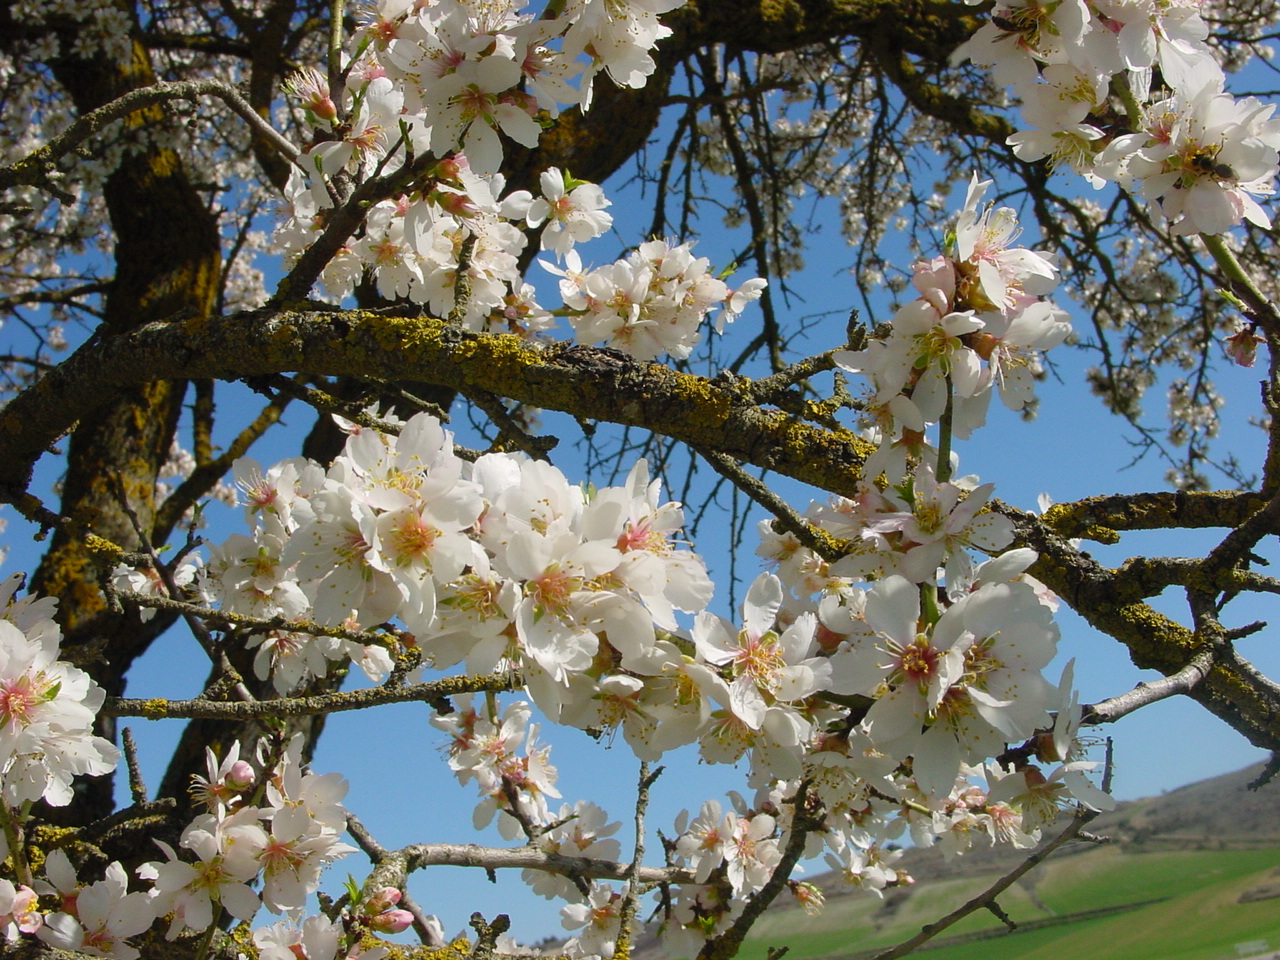 An almond tree in blossom near Urueña in Valladolid, Spain, during Tu BiShvat. Photo by Nicolás Pérez.